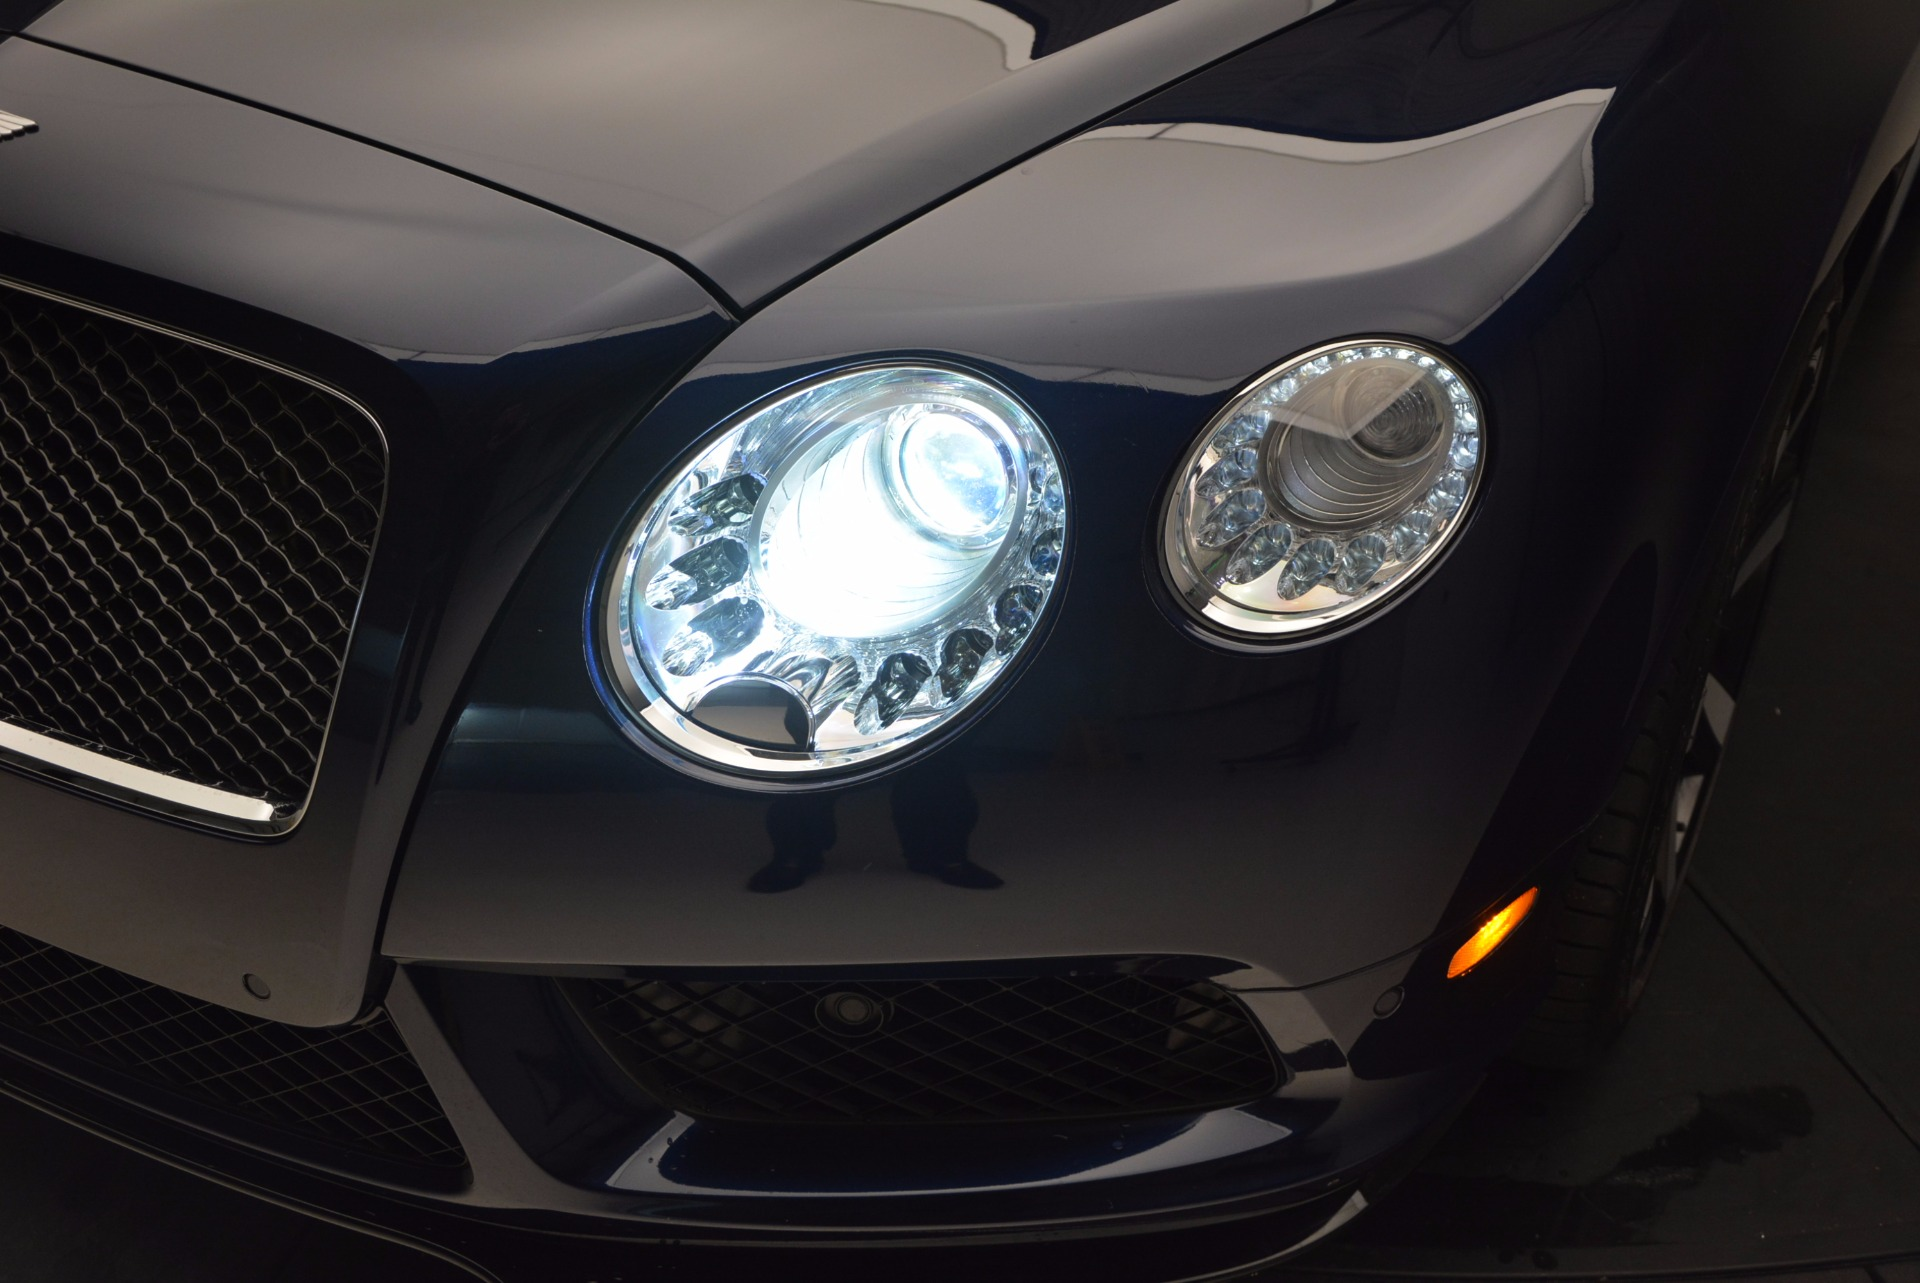 Used 2015 Bentley Continental GT V8 S For Sale In Greenwich, CT. Alfa Romeo of Greenwich, 7131 798_p18